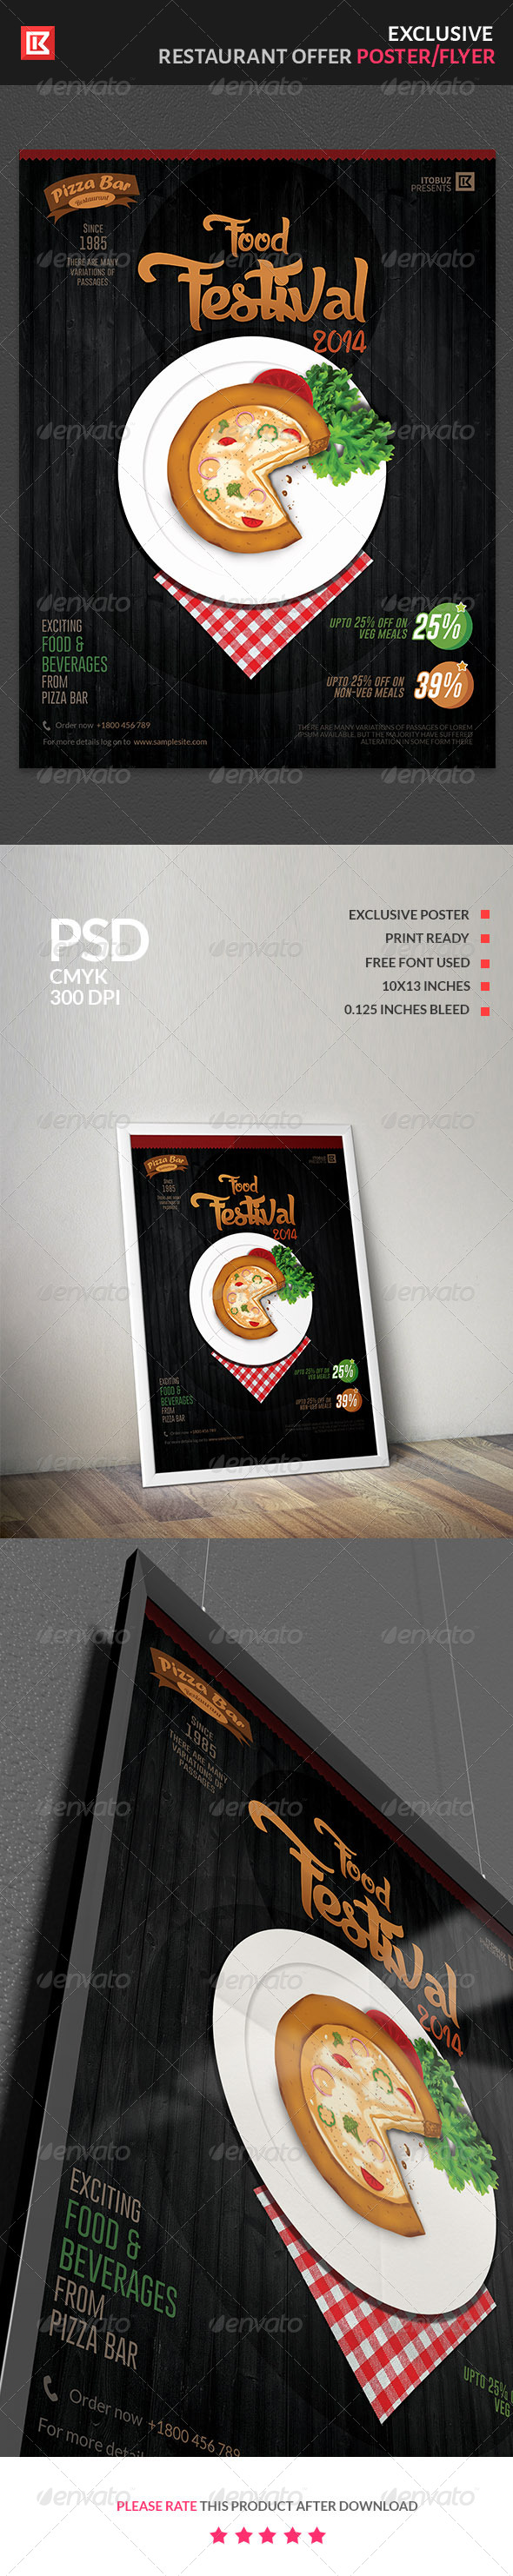 GraphicRiver Food and Beverage Restaurant Offer Poster Flyer 7548254